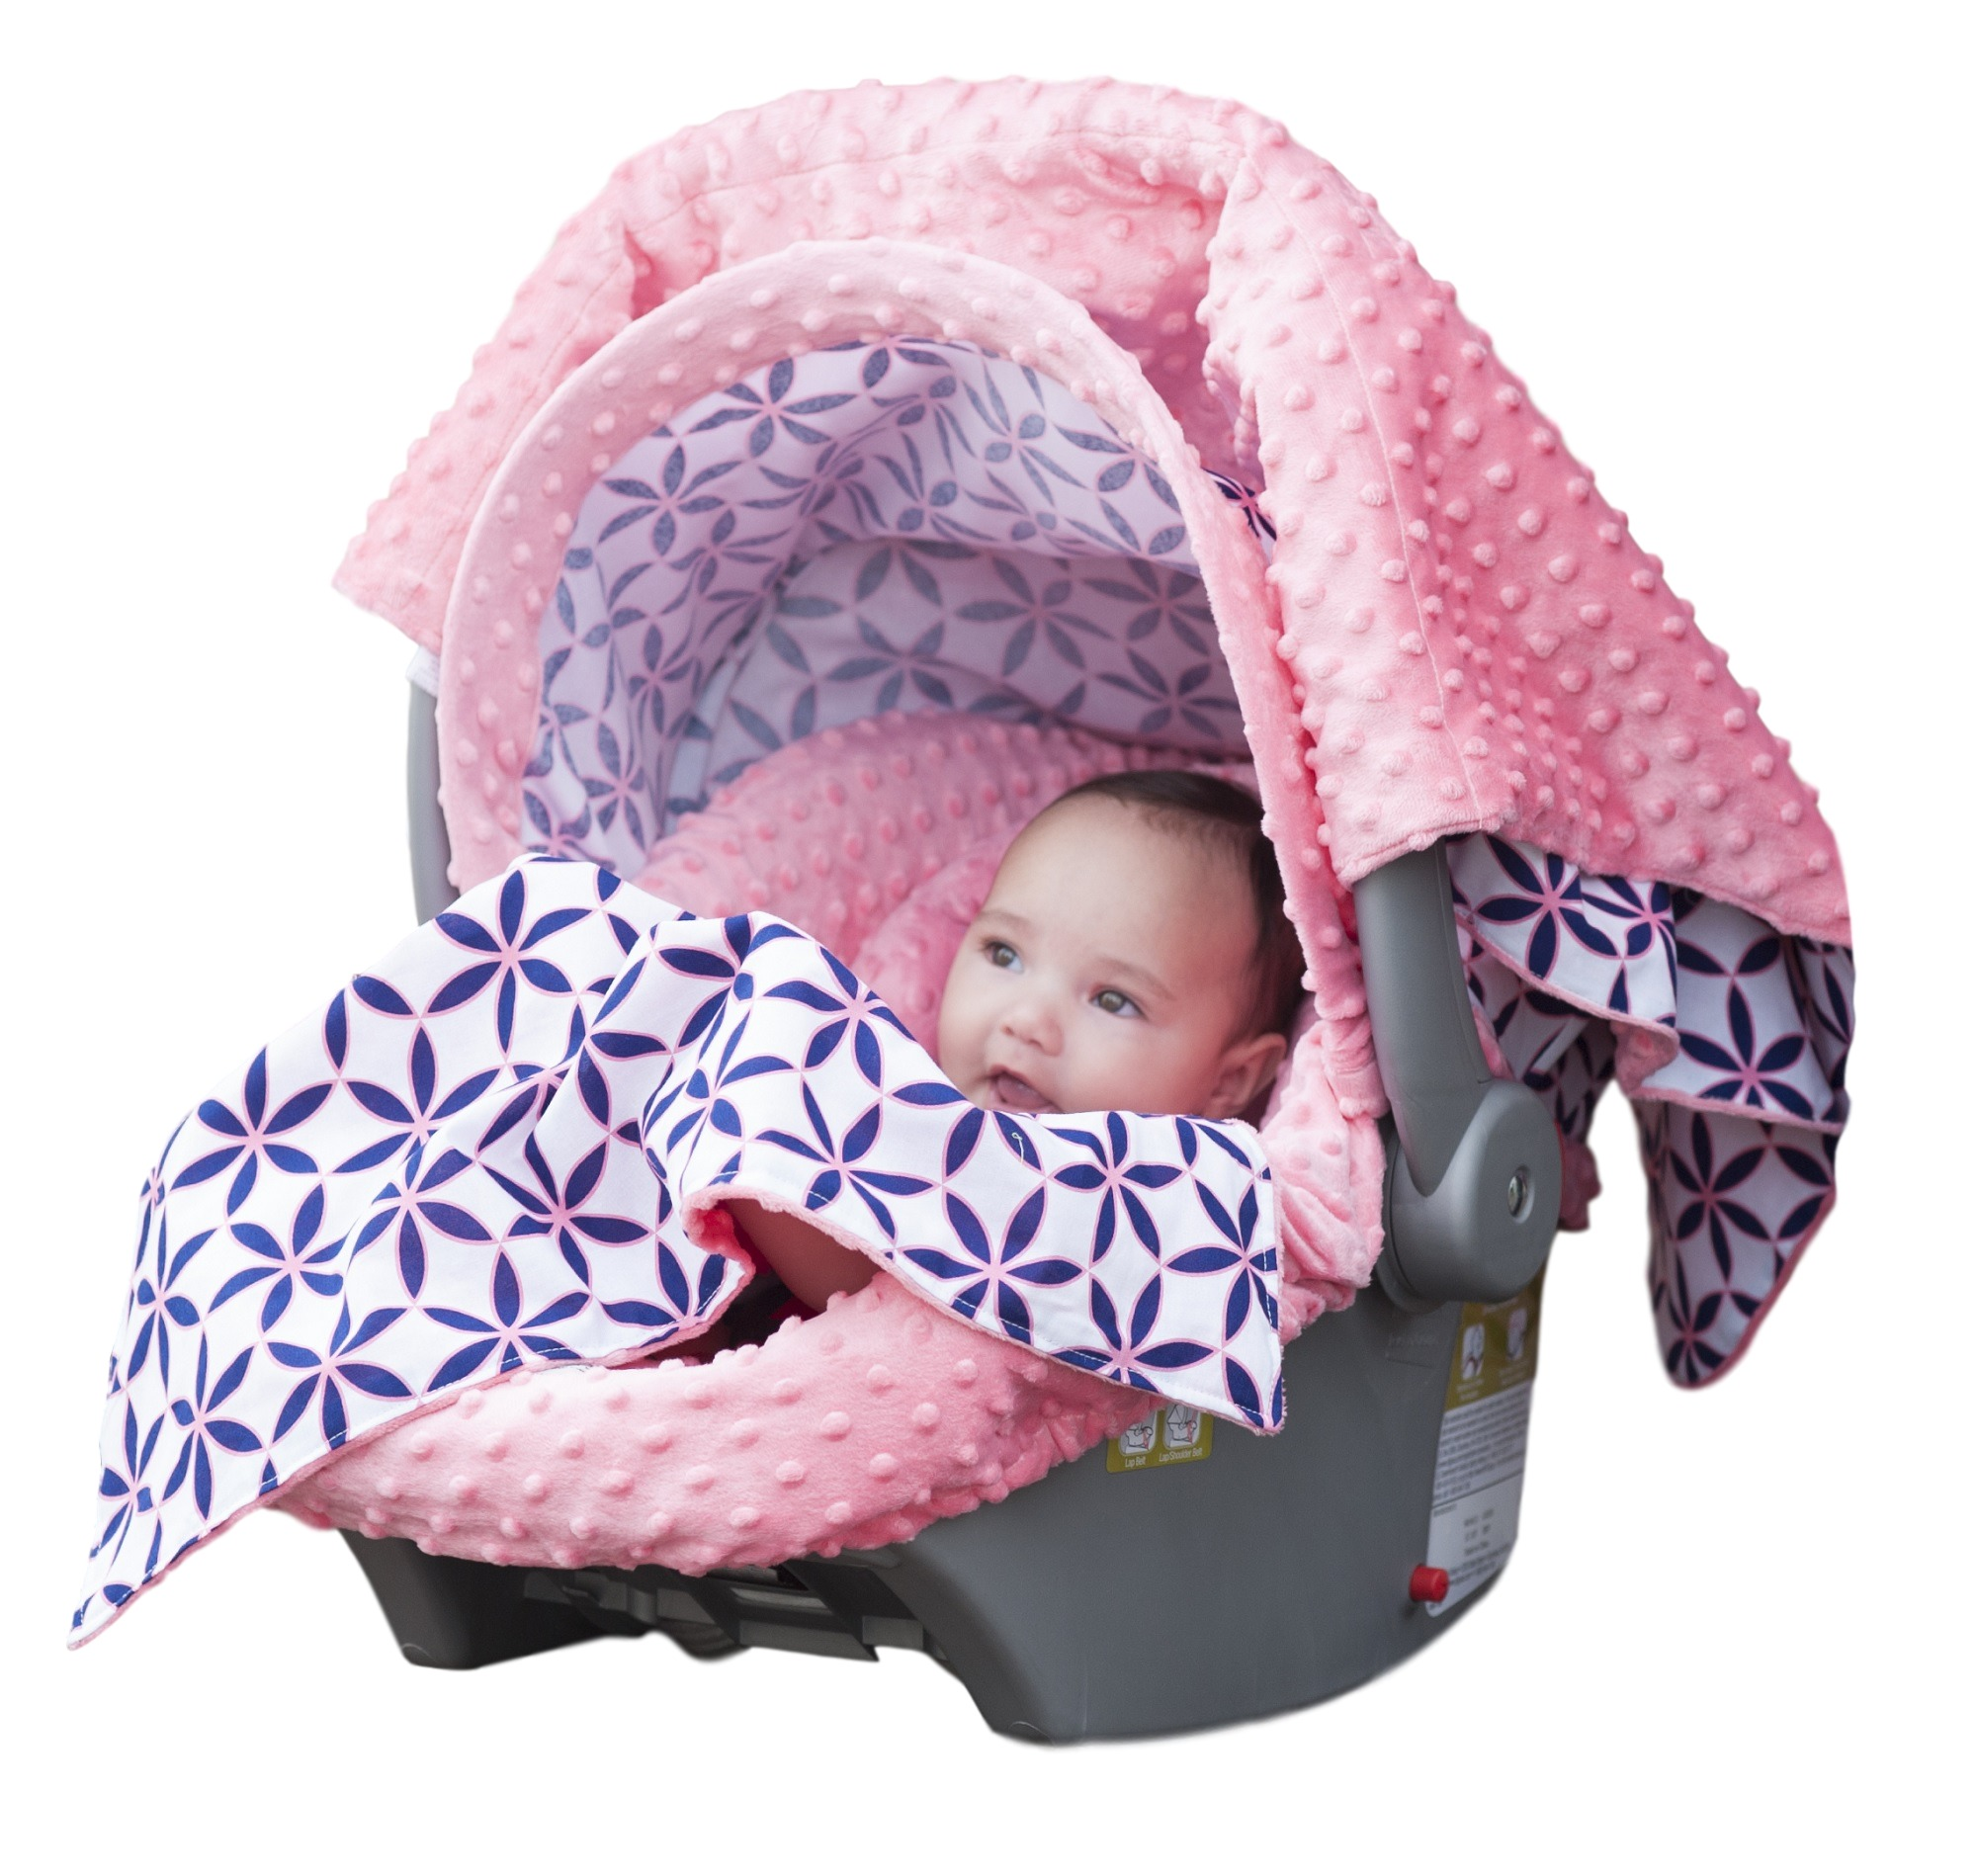 Carseat Canopy 5 pc Whole Caboodle Baby Car seat Cover set - Minky Kendra  sc 1 st  Walmart & Carseat Canopy 5 pc Whole Caboodle Baby Car seat Cover set - Minky ...